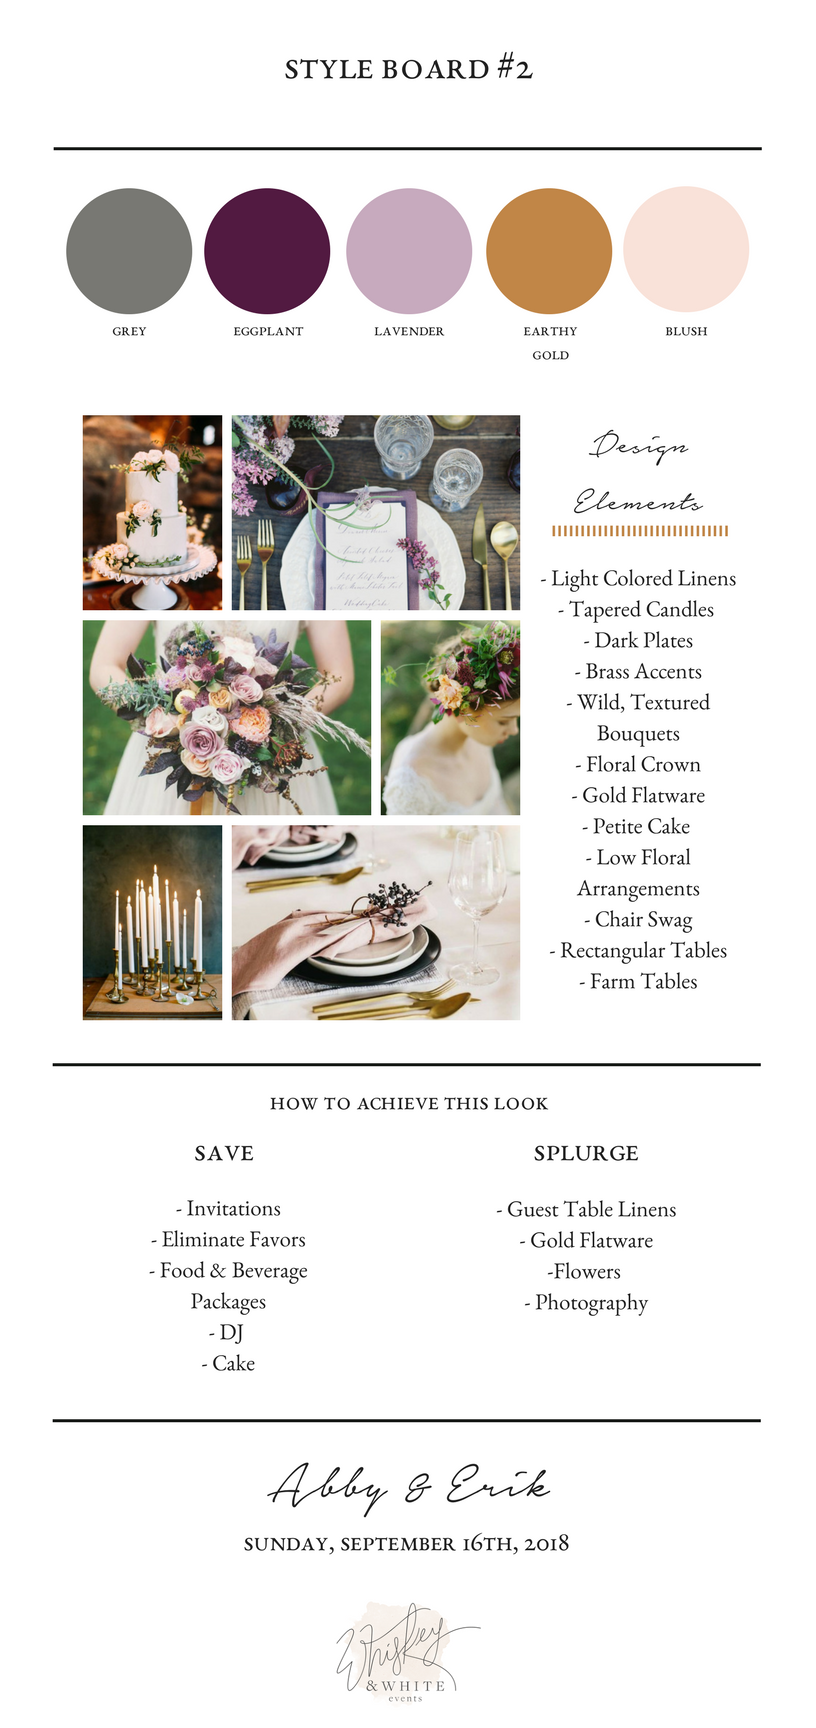 Abby & Erik's Wedding Style Board #2.png